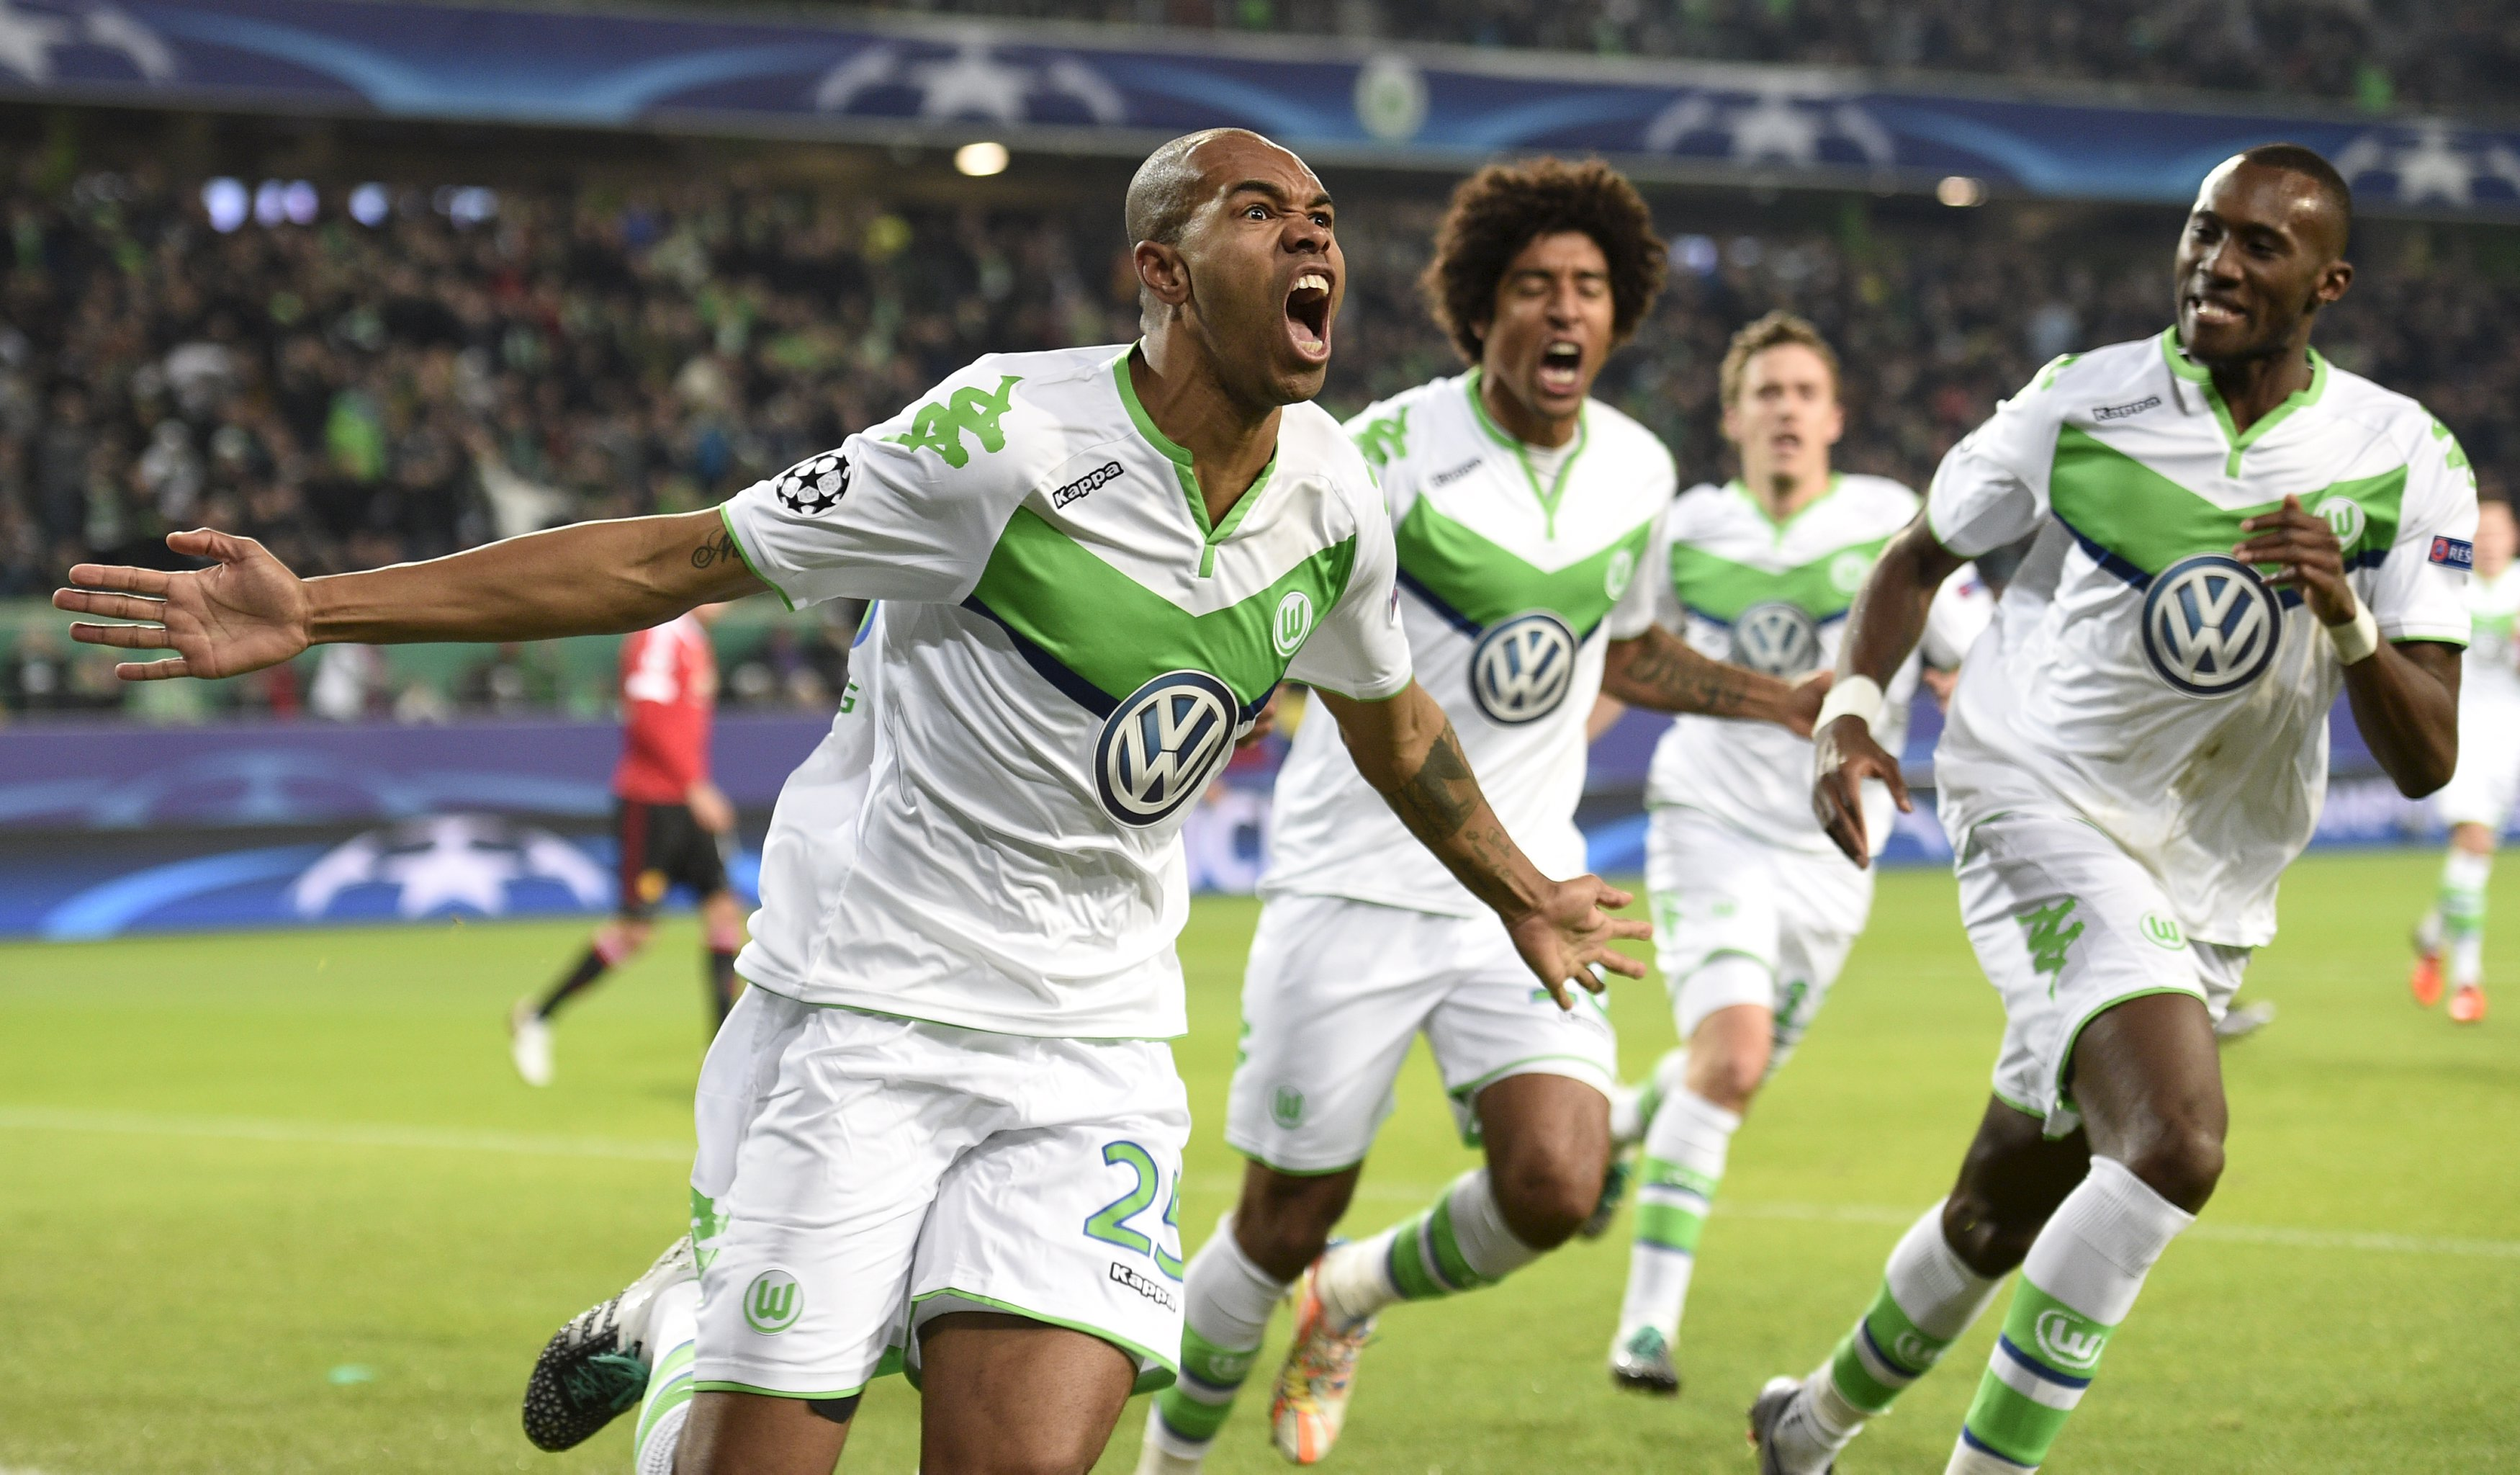 Naldo celebrates after scoring the first goal for Wolfsburg. Photo: Reuters